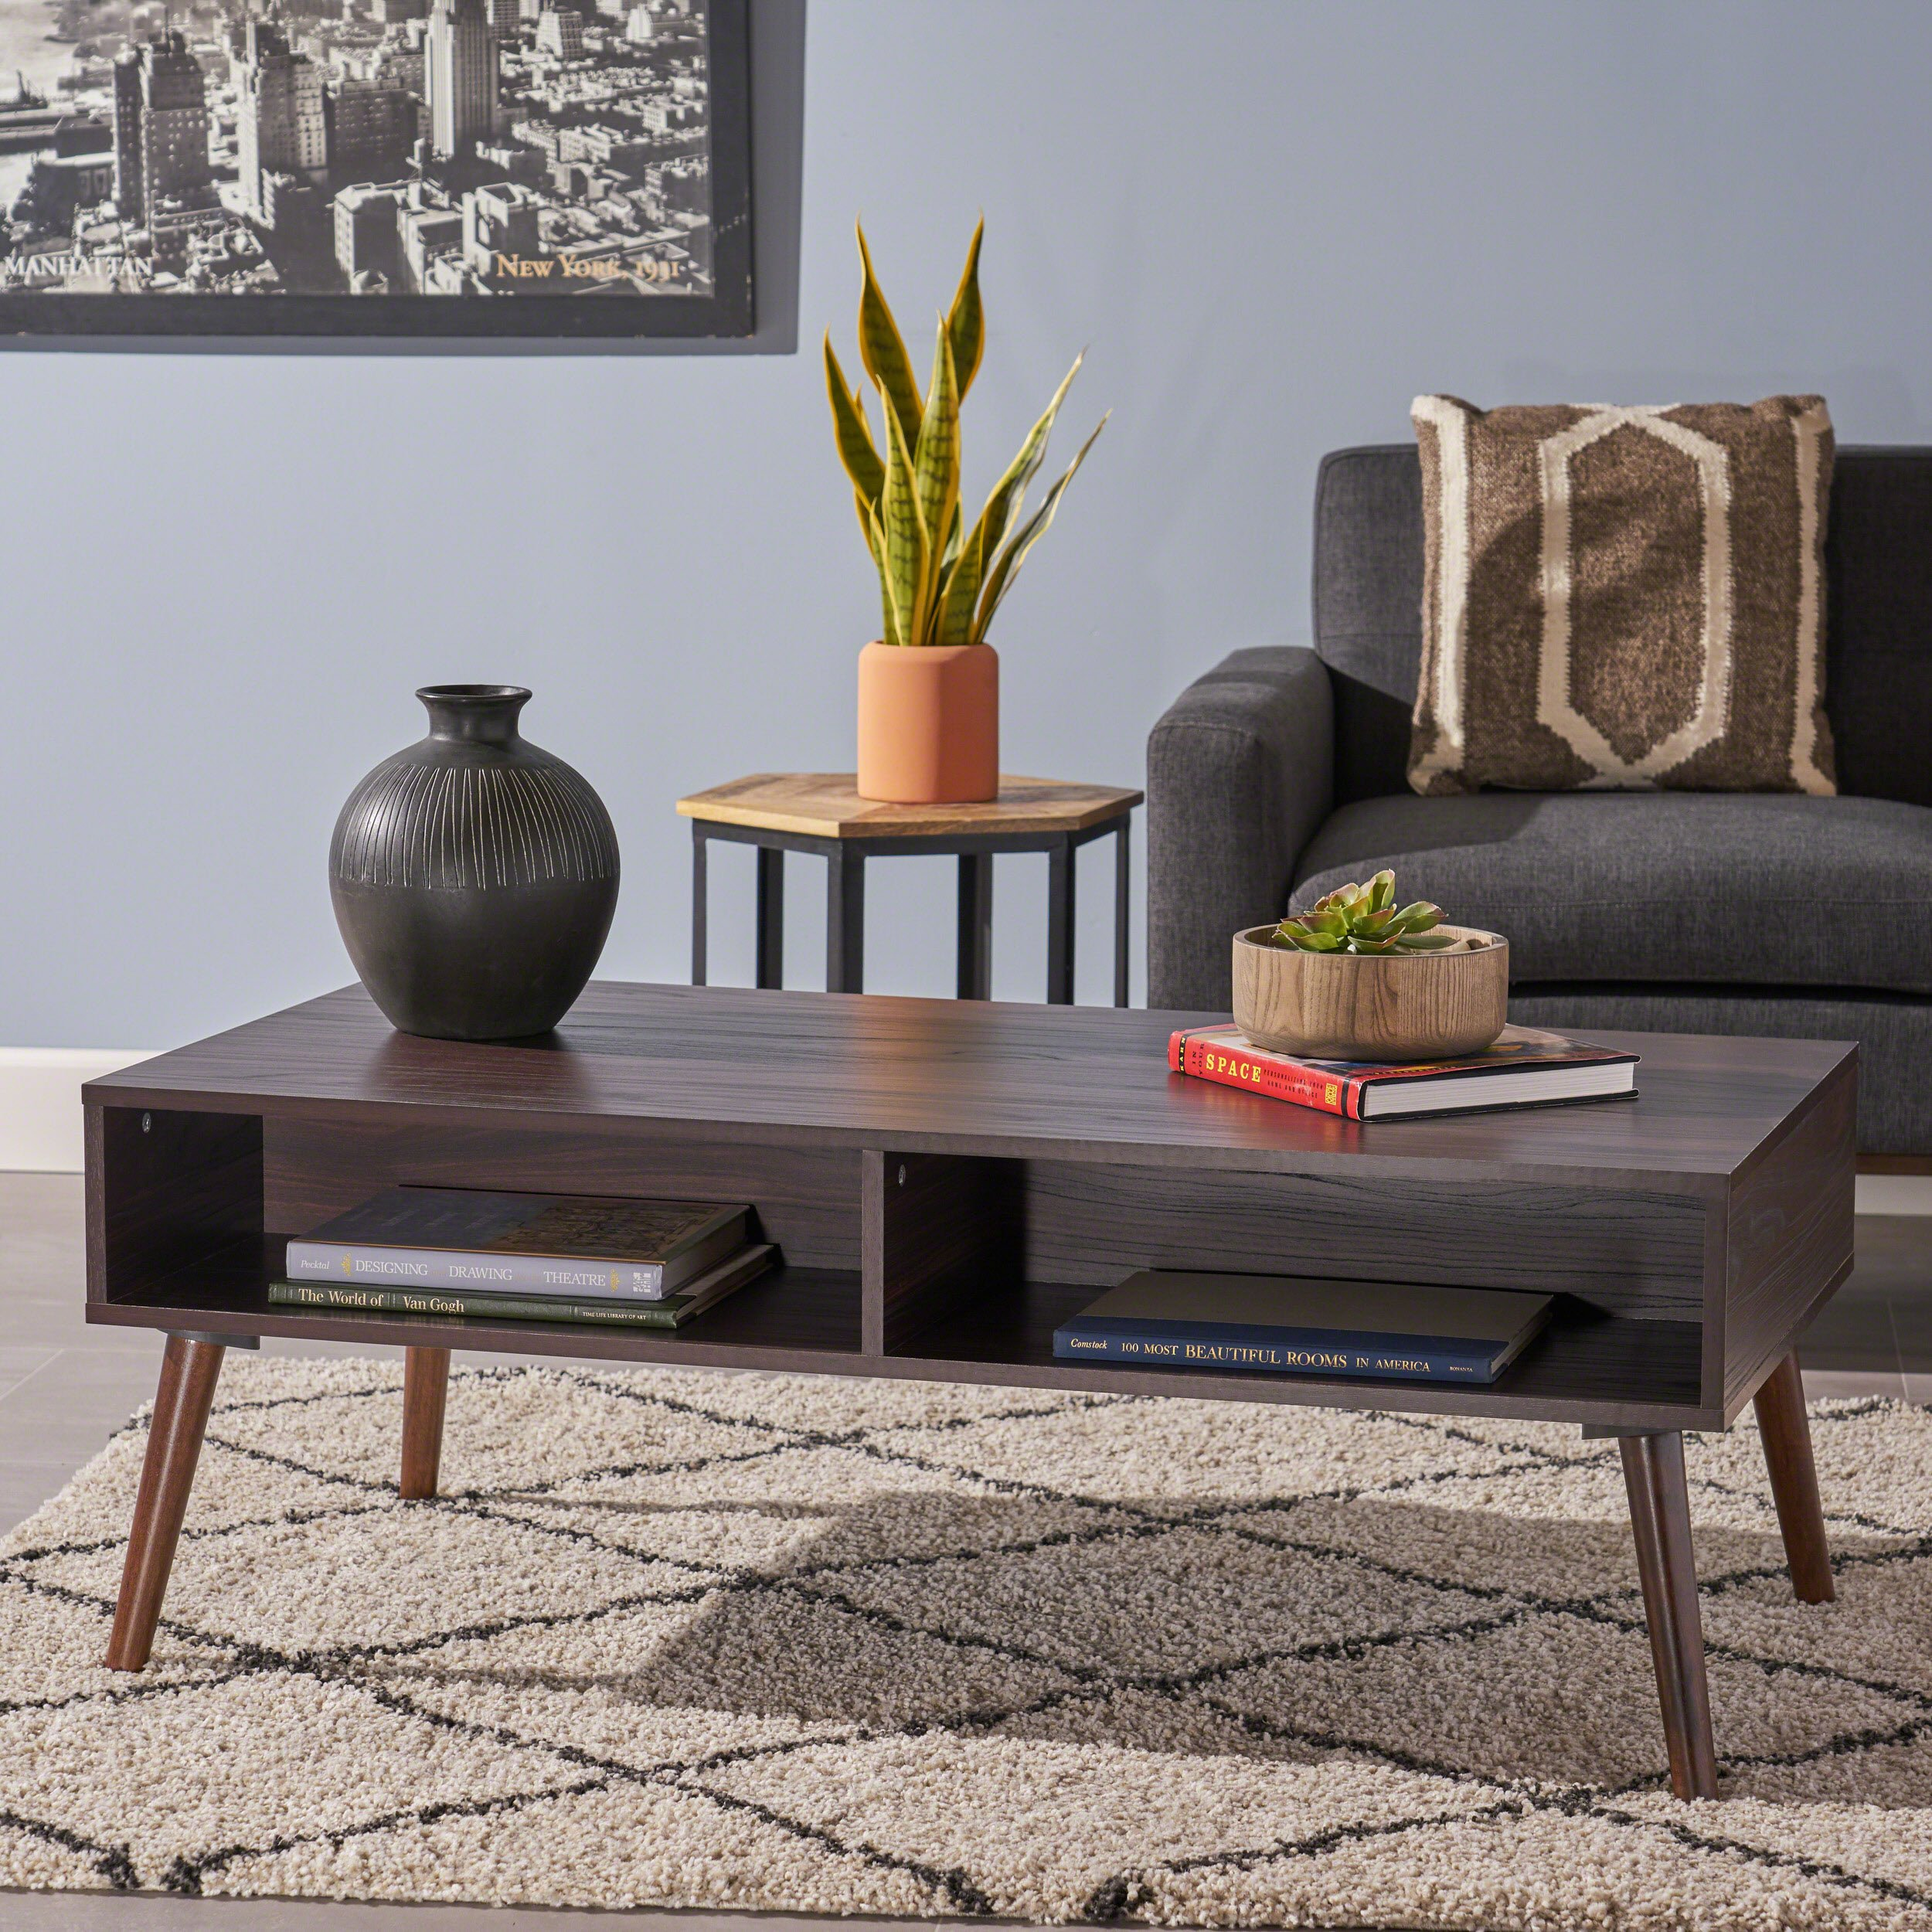 Christopher Knight Home Andy Mid Century Modern Fuax Wood Overlay Coffee Table, Dark Walnut by Christopher Knight Home